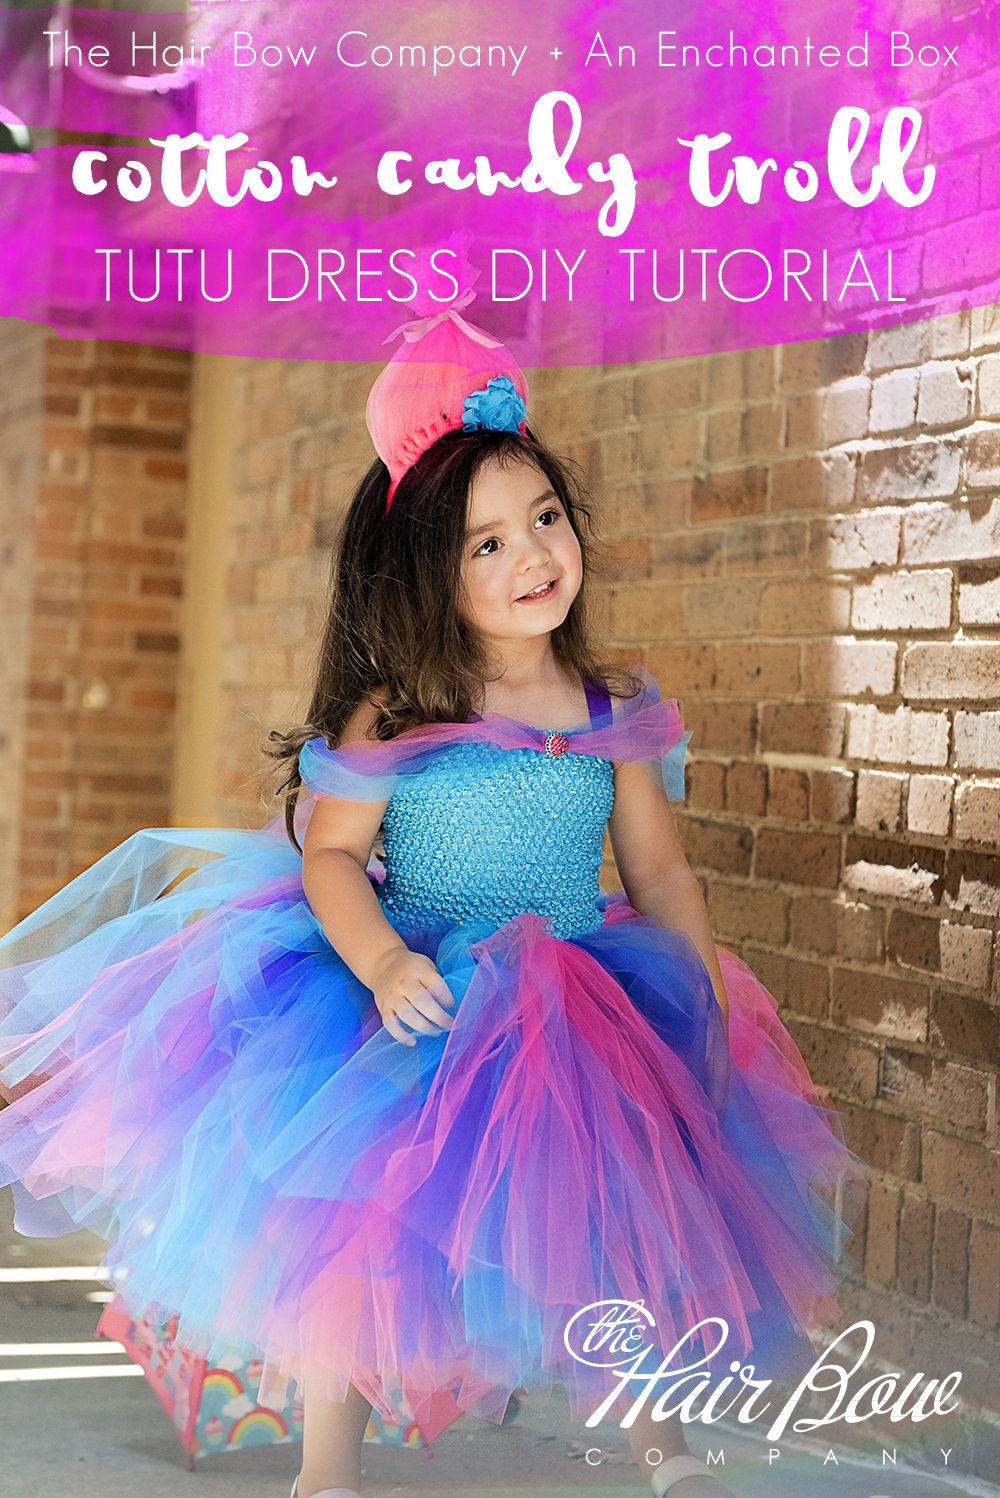 Cotton candy troll tutu dress diy the hair bow company diy cotton candy troll tutu dress solutioingenieria Image collections